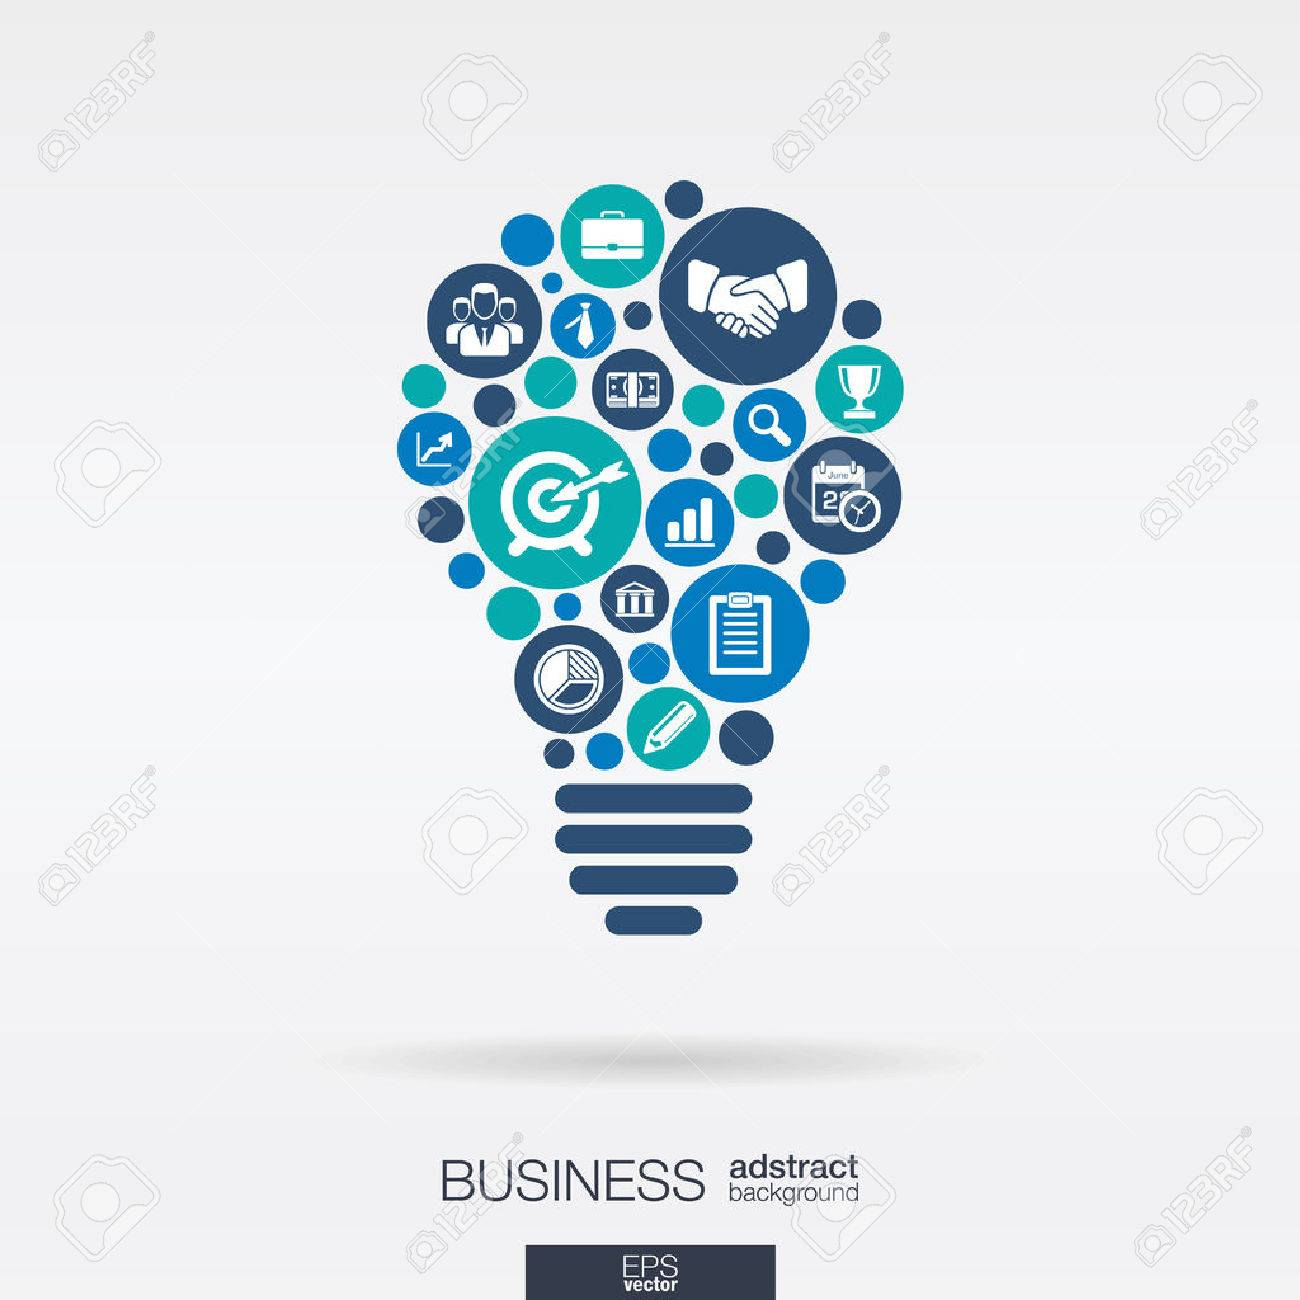 Color circles, flat icons in a idea bulb shape: business, marketing research, strategy, mission, analytics concepts. - 43347916